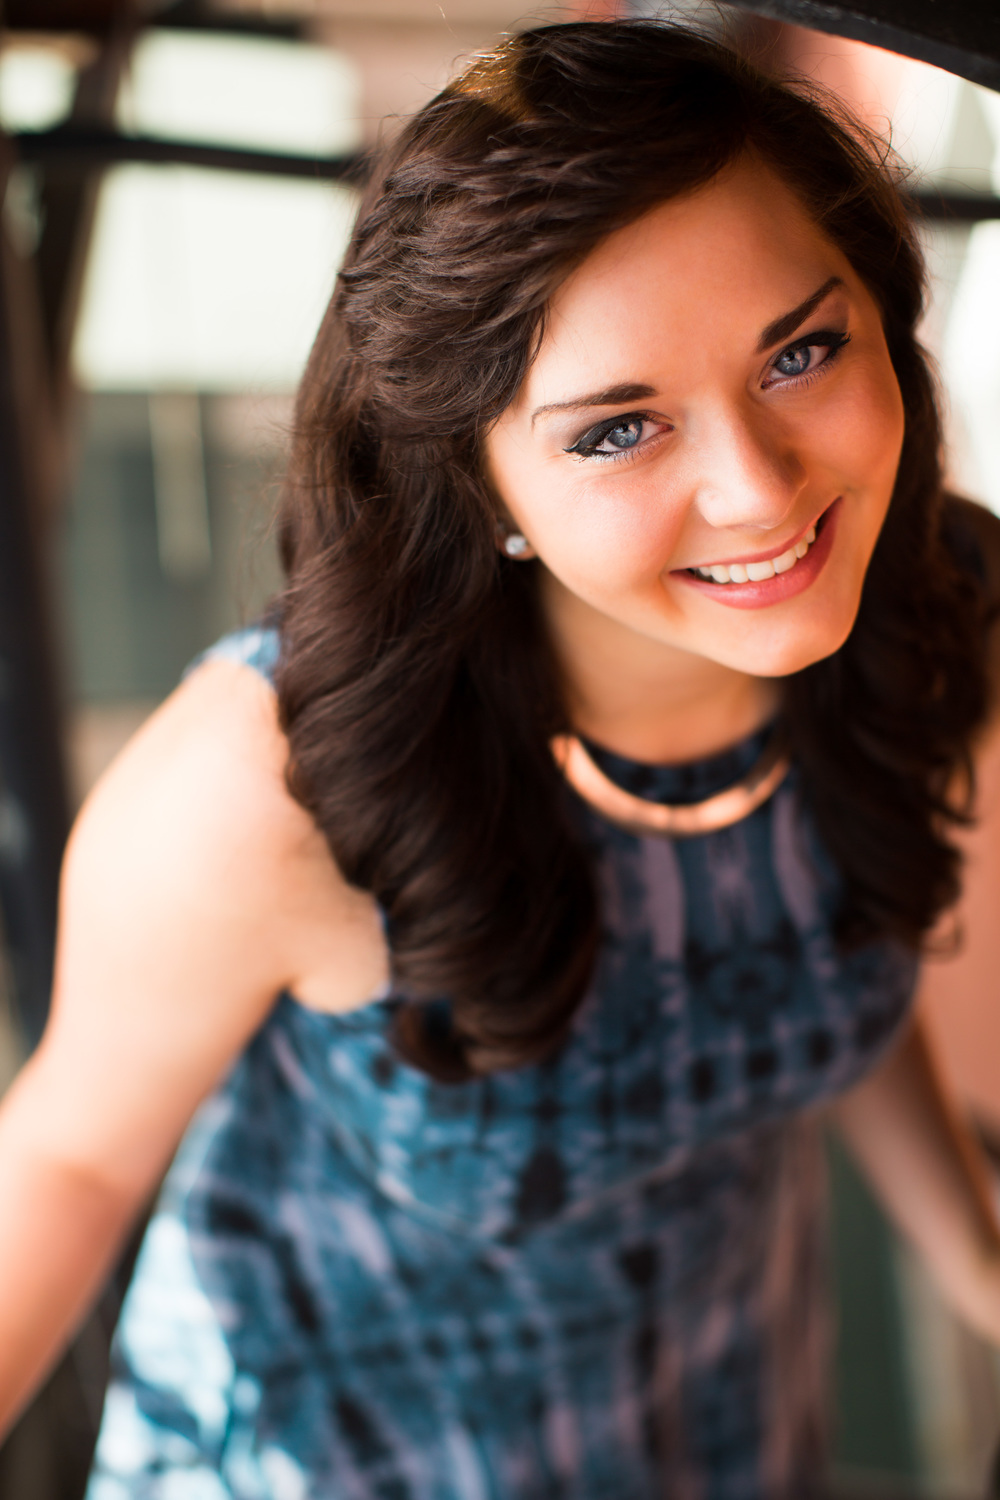 Shayla, senior portrait in Colorado Springs by dave + sonya photography